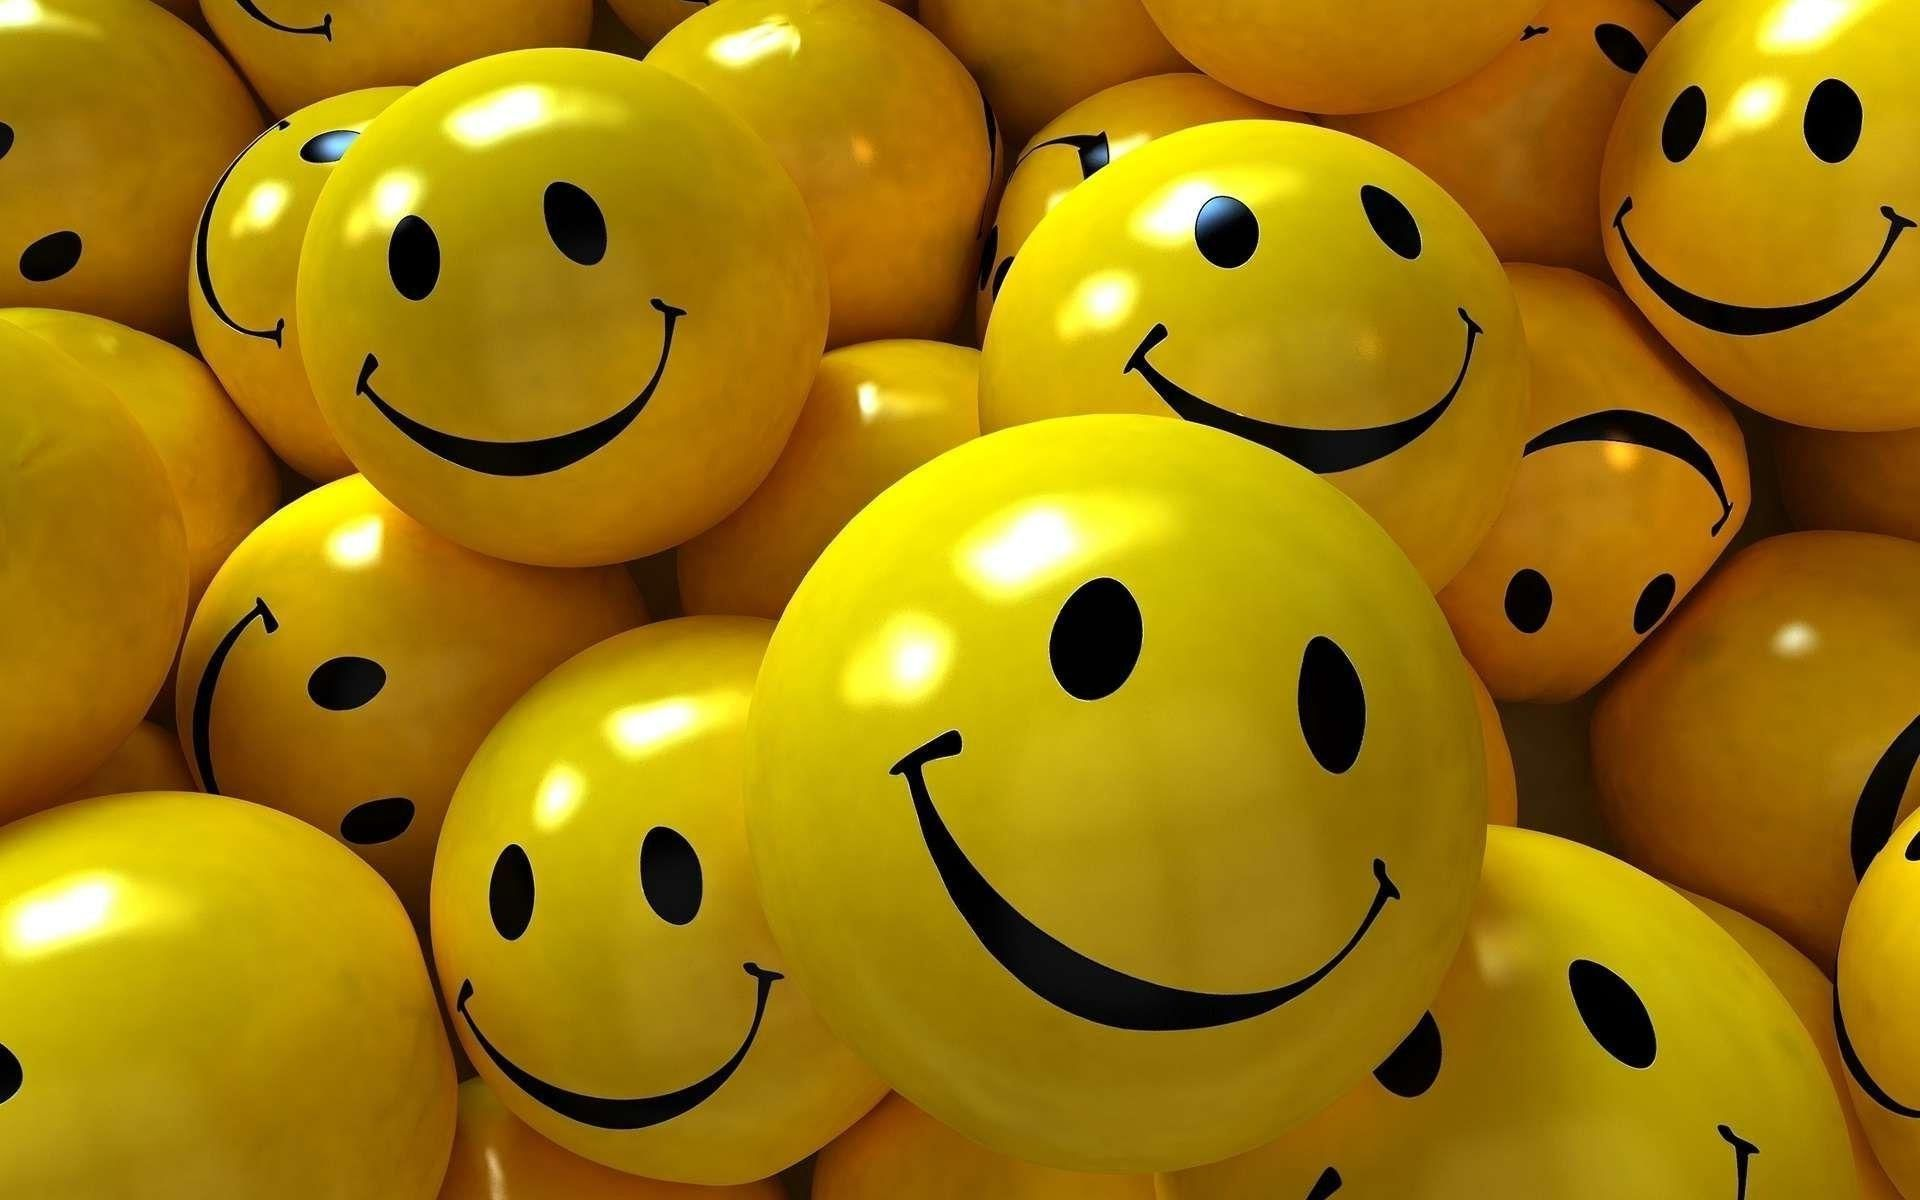 Happy Smile Face Wallpapers - Top Free Happy Smile Face ...